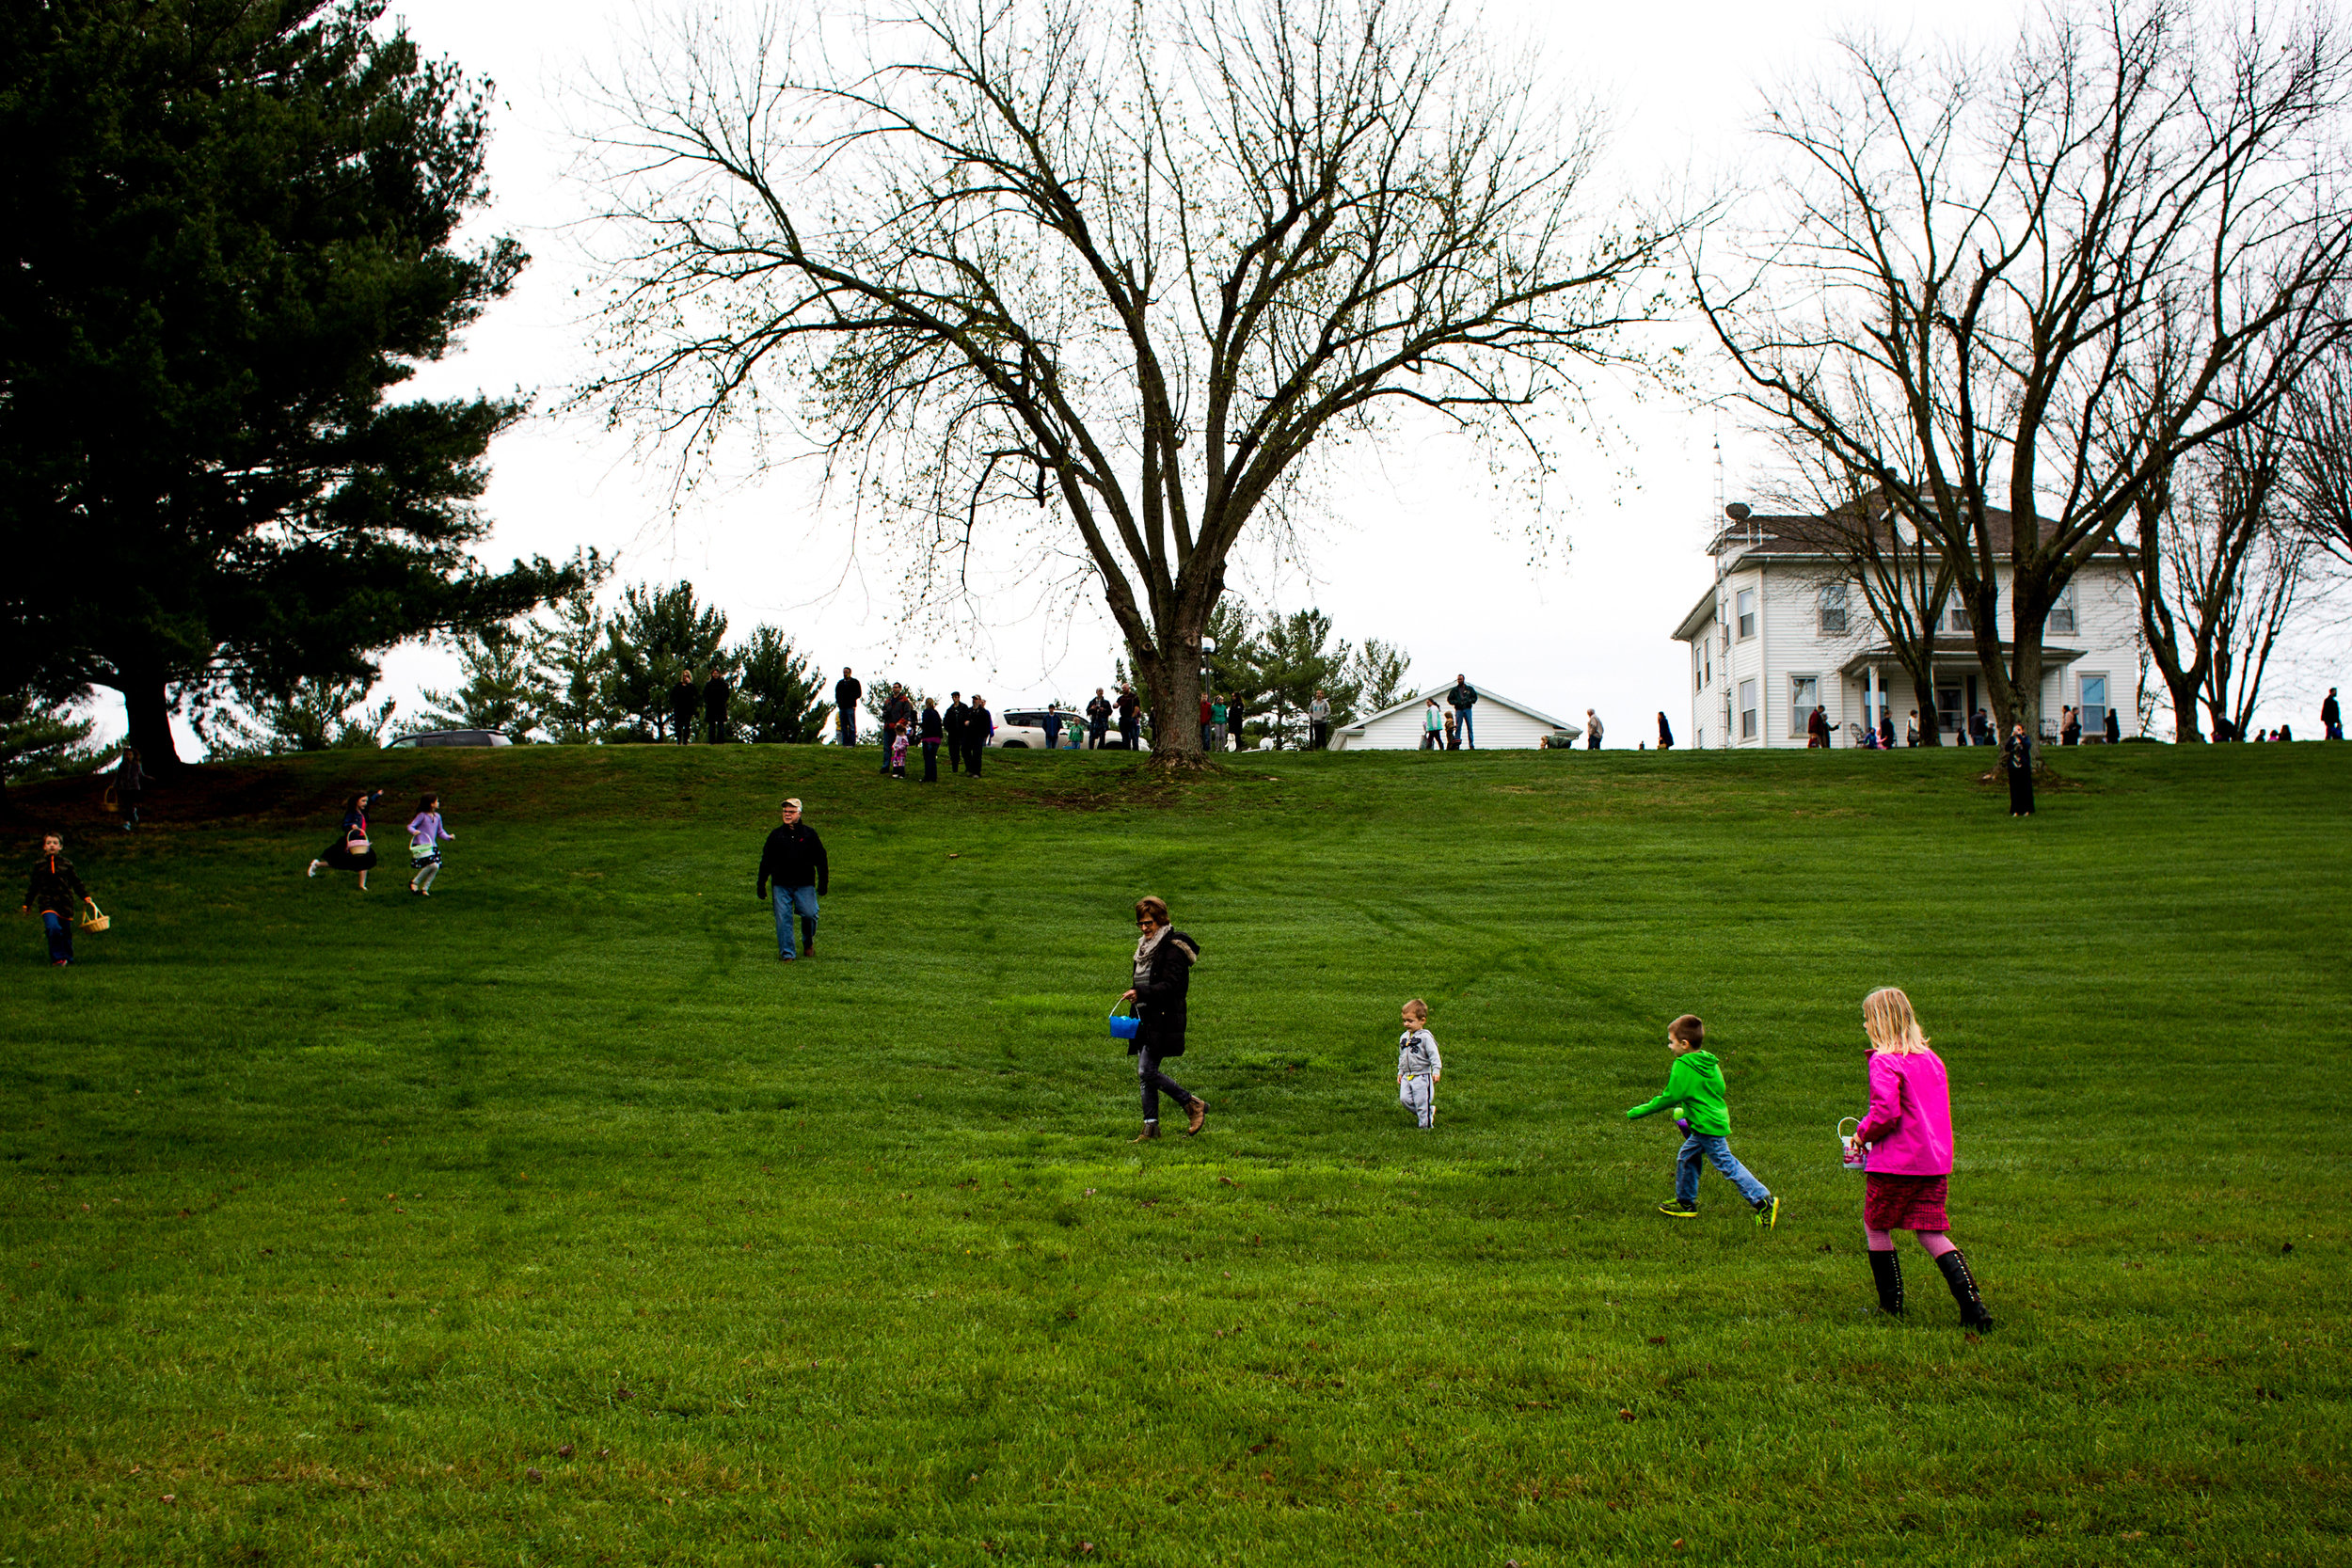 Children dashed along the hill outside St. Celestine Catholic Church as they searched for Easter eggs during the Easter egg hunt on Sunday.